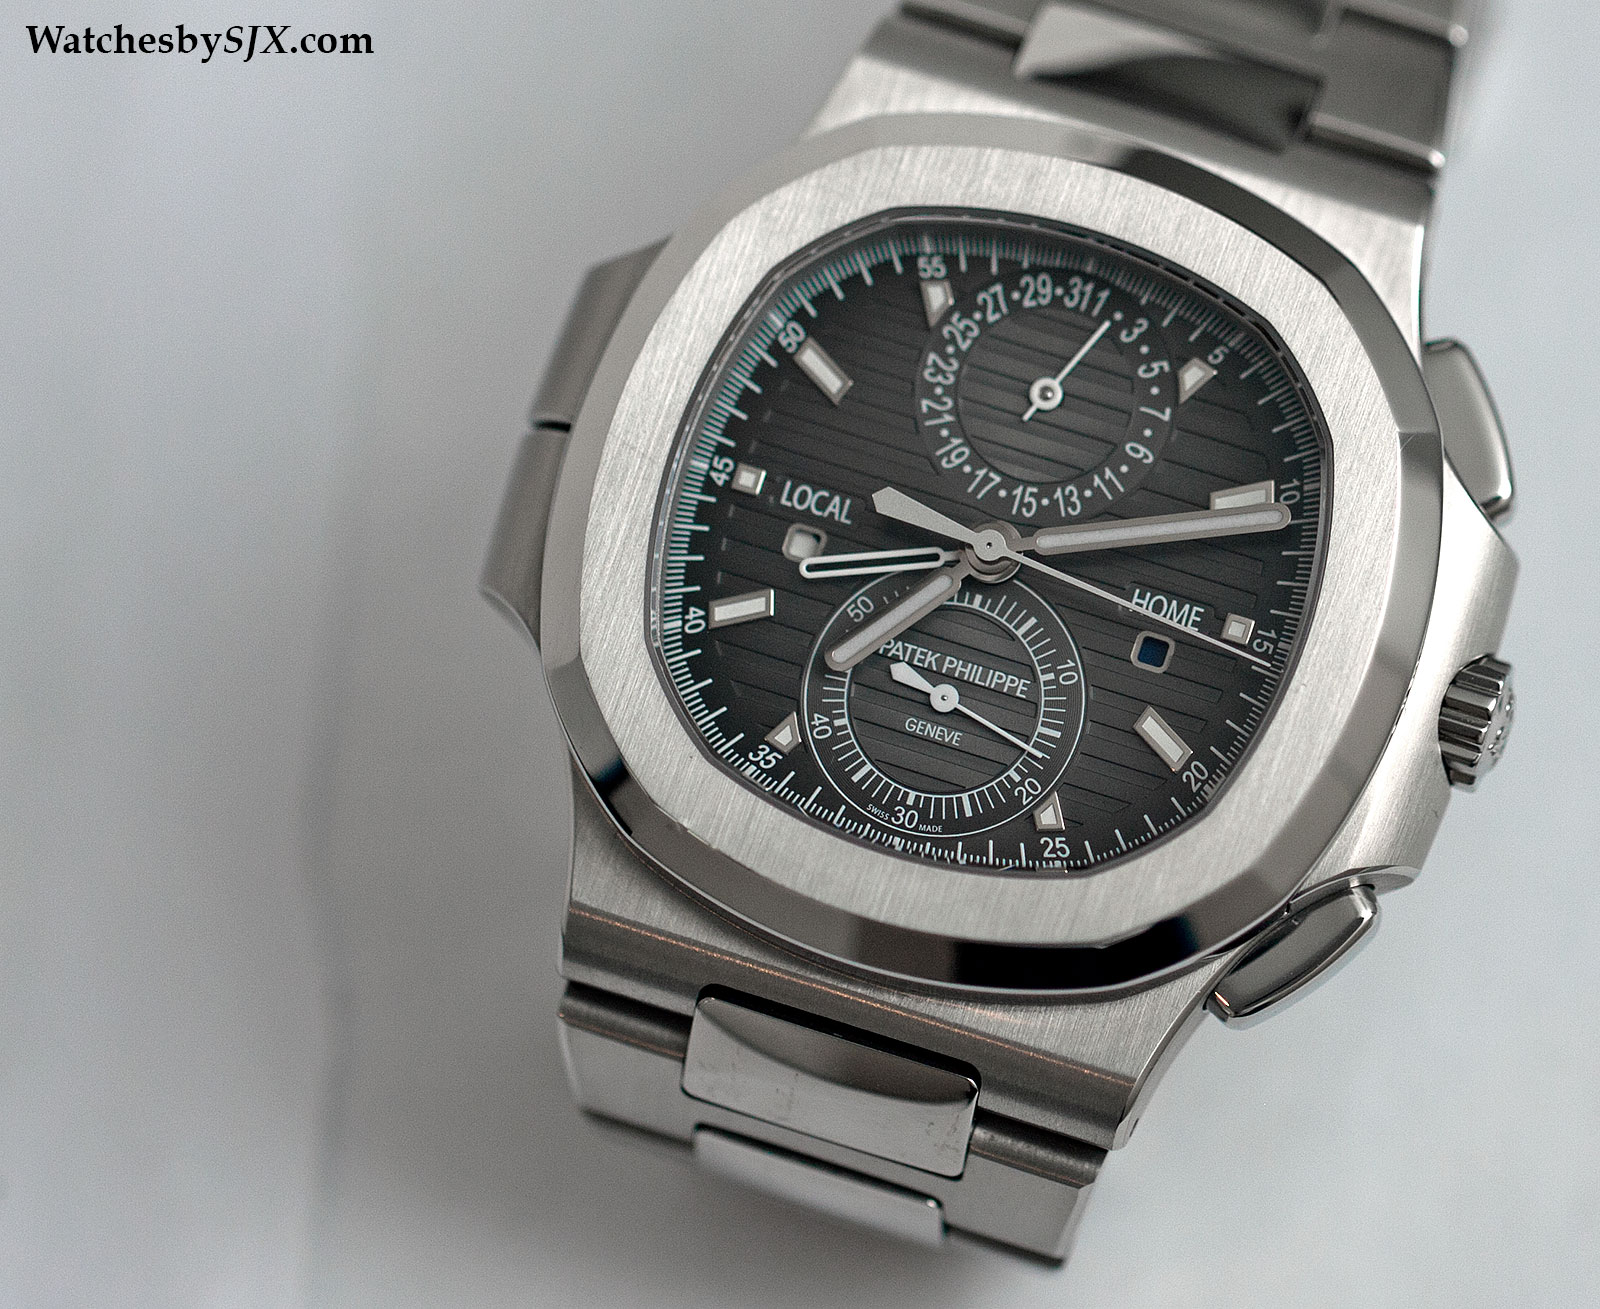 Patek-Philippe-Nautilus-Travel-Time-5990-1A-3